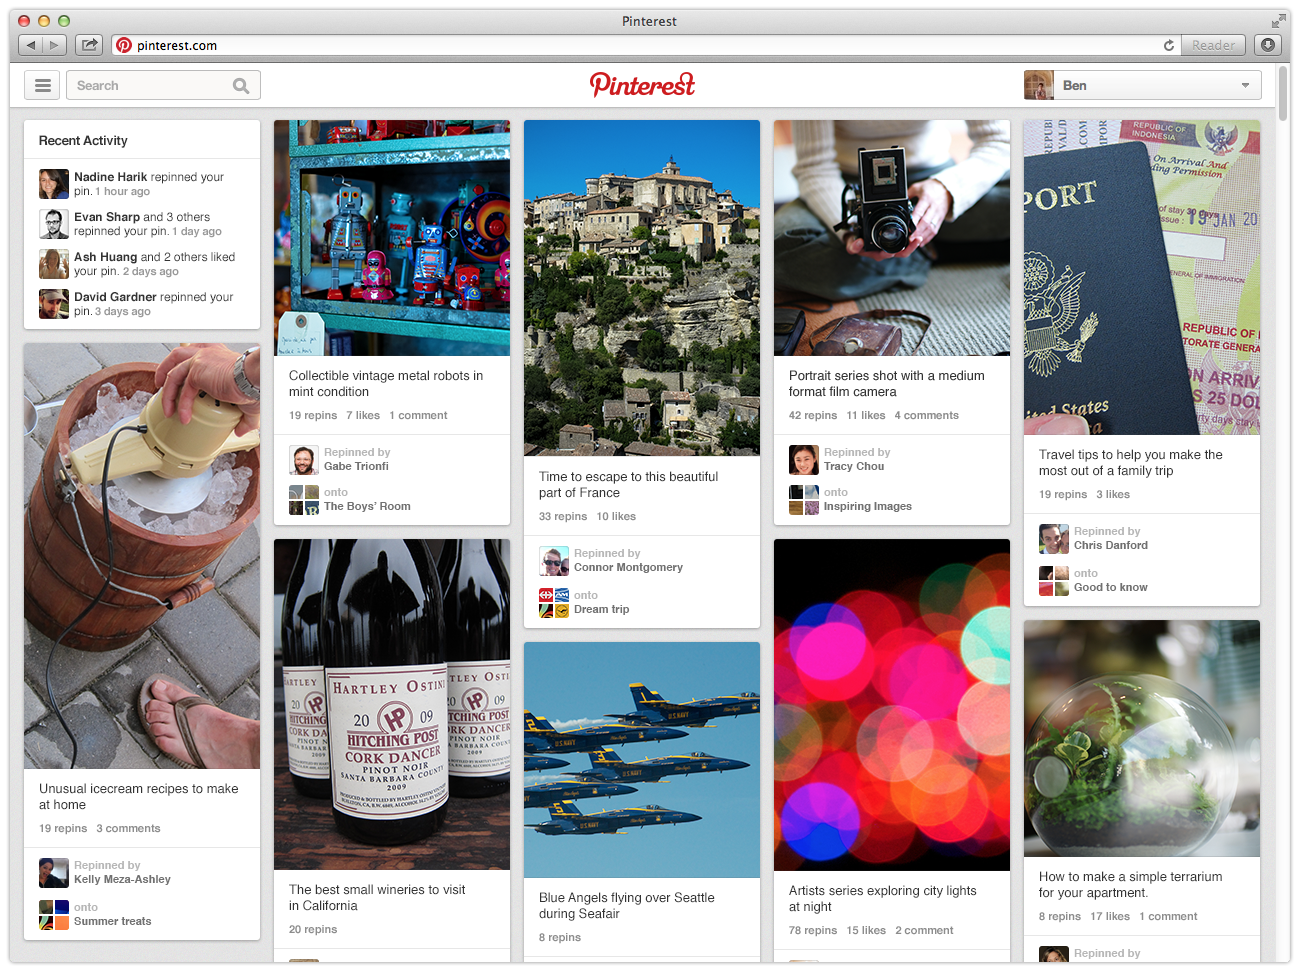 Semiocast: Pinterest Now Has 70 Million Users And Is